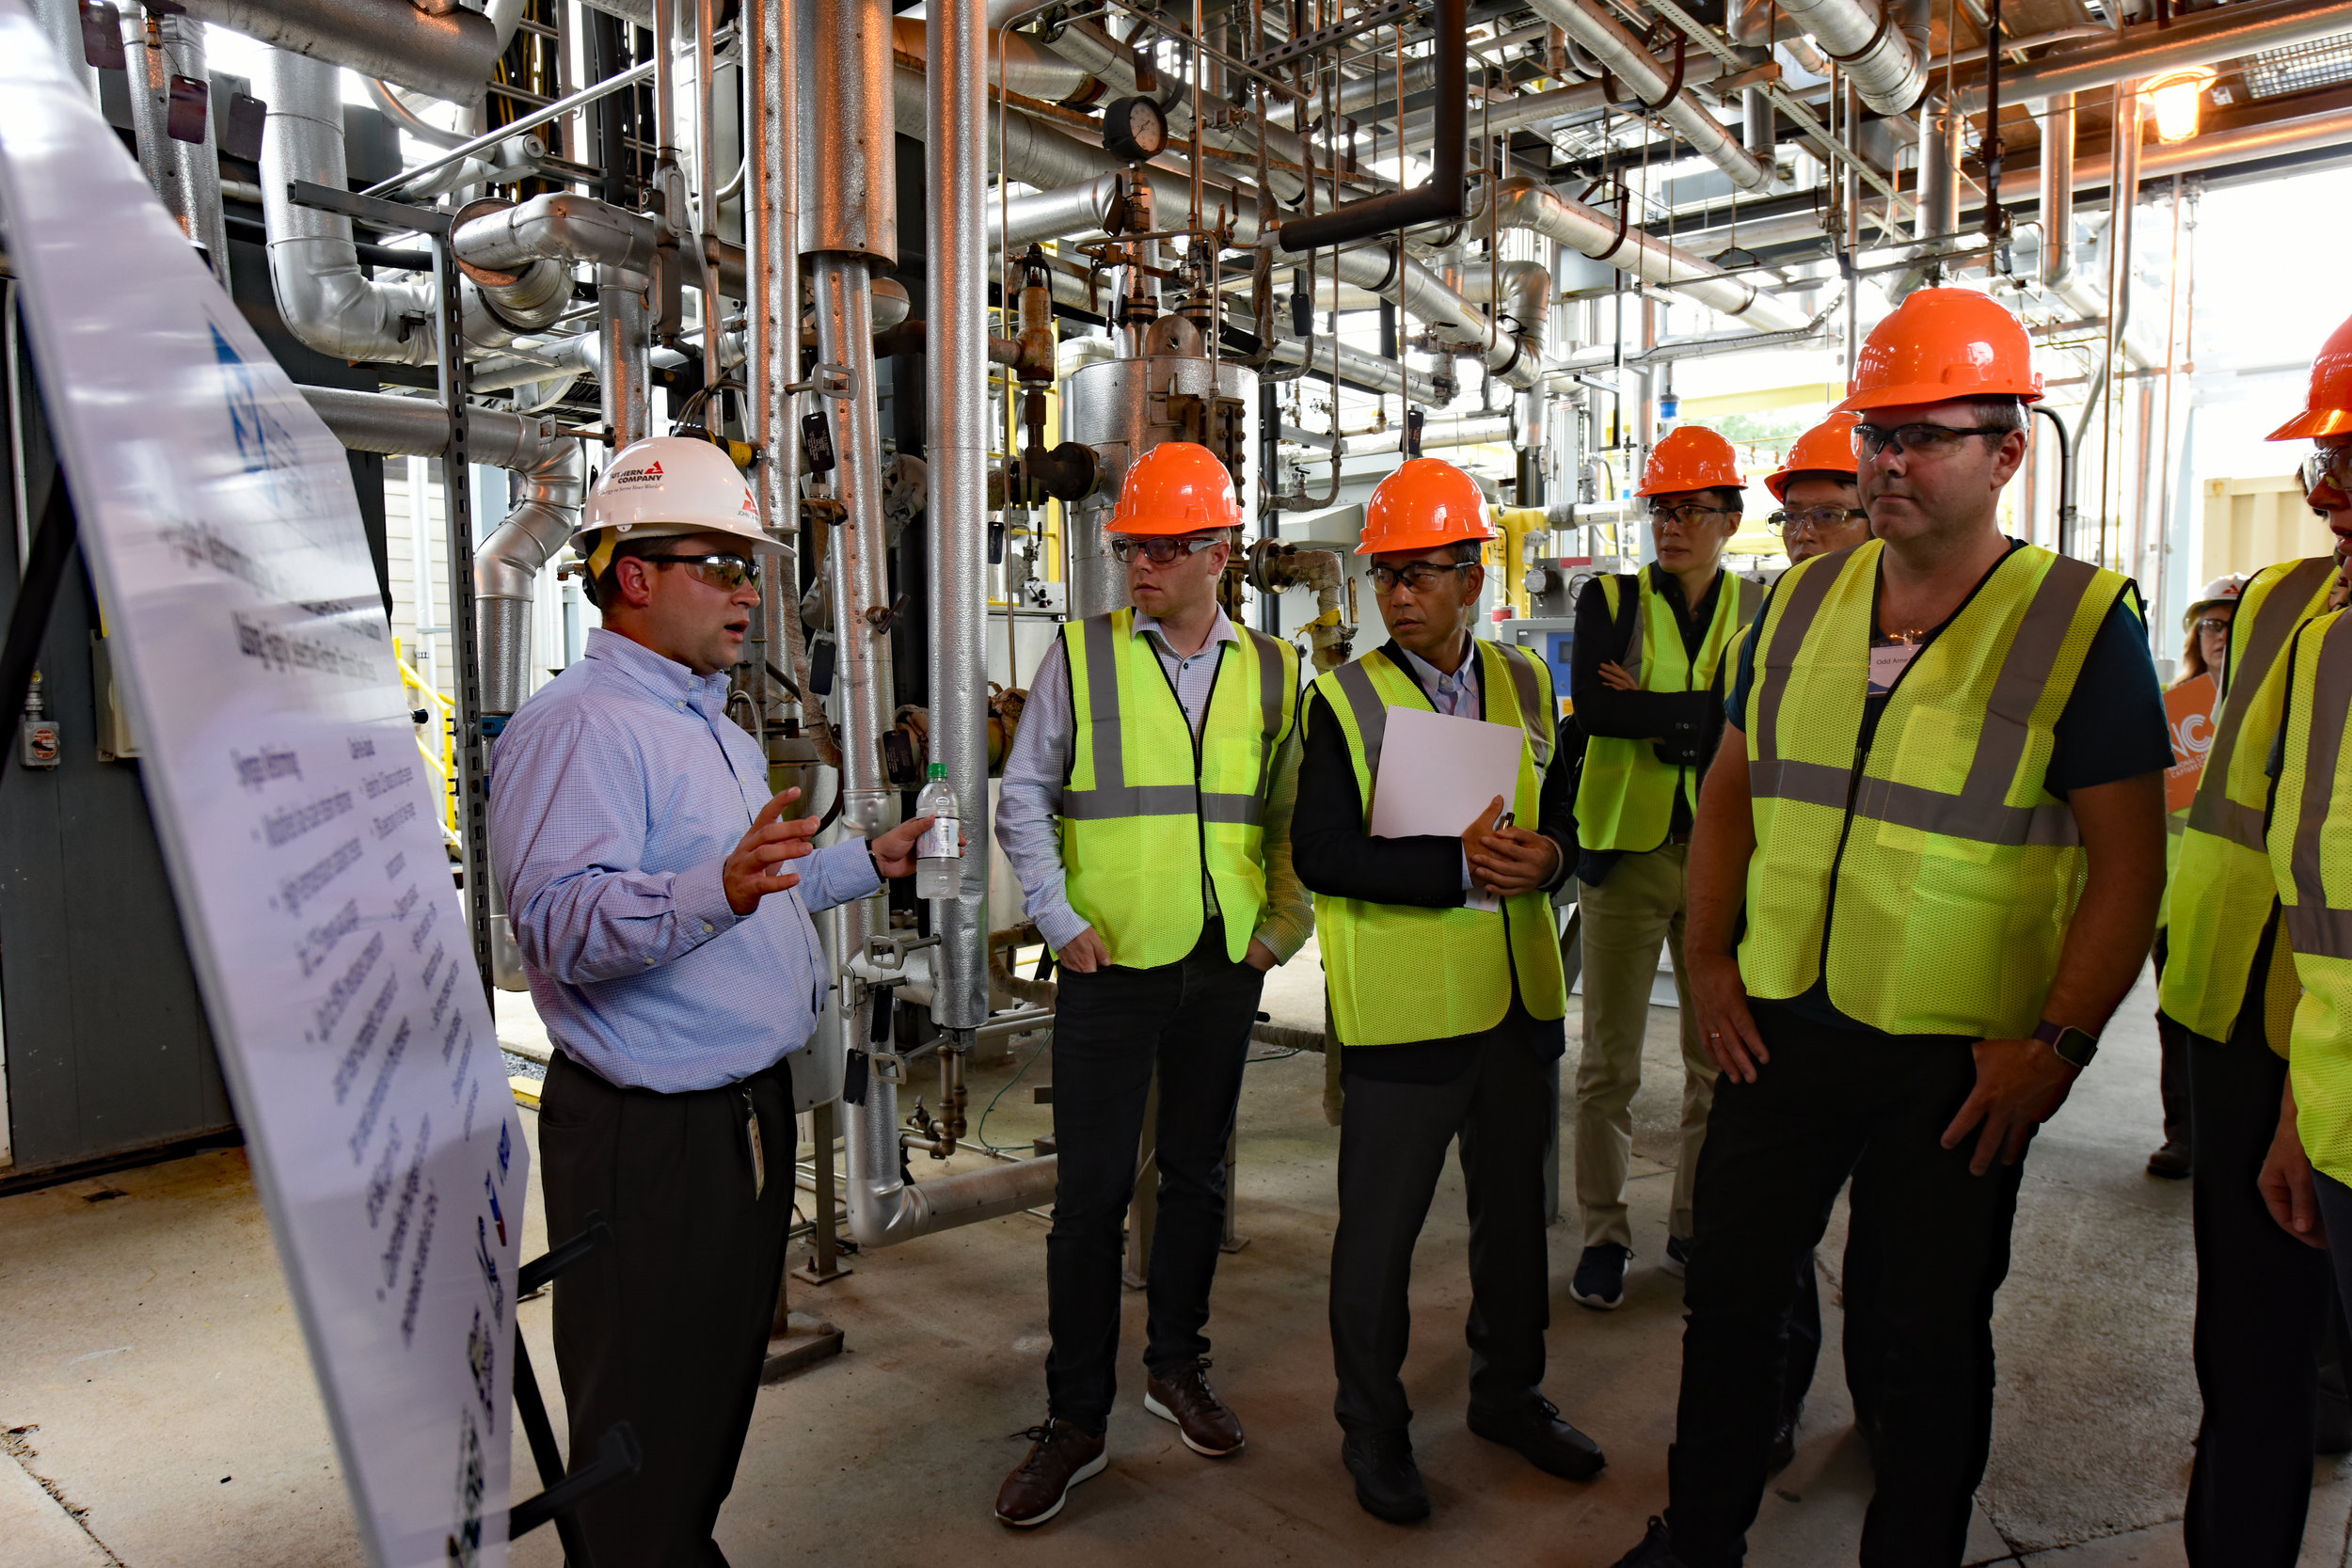 Senior engineer John Carroll, left, describes a project underway with technology partner Southern Research, of Birmingham.